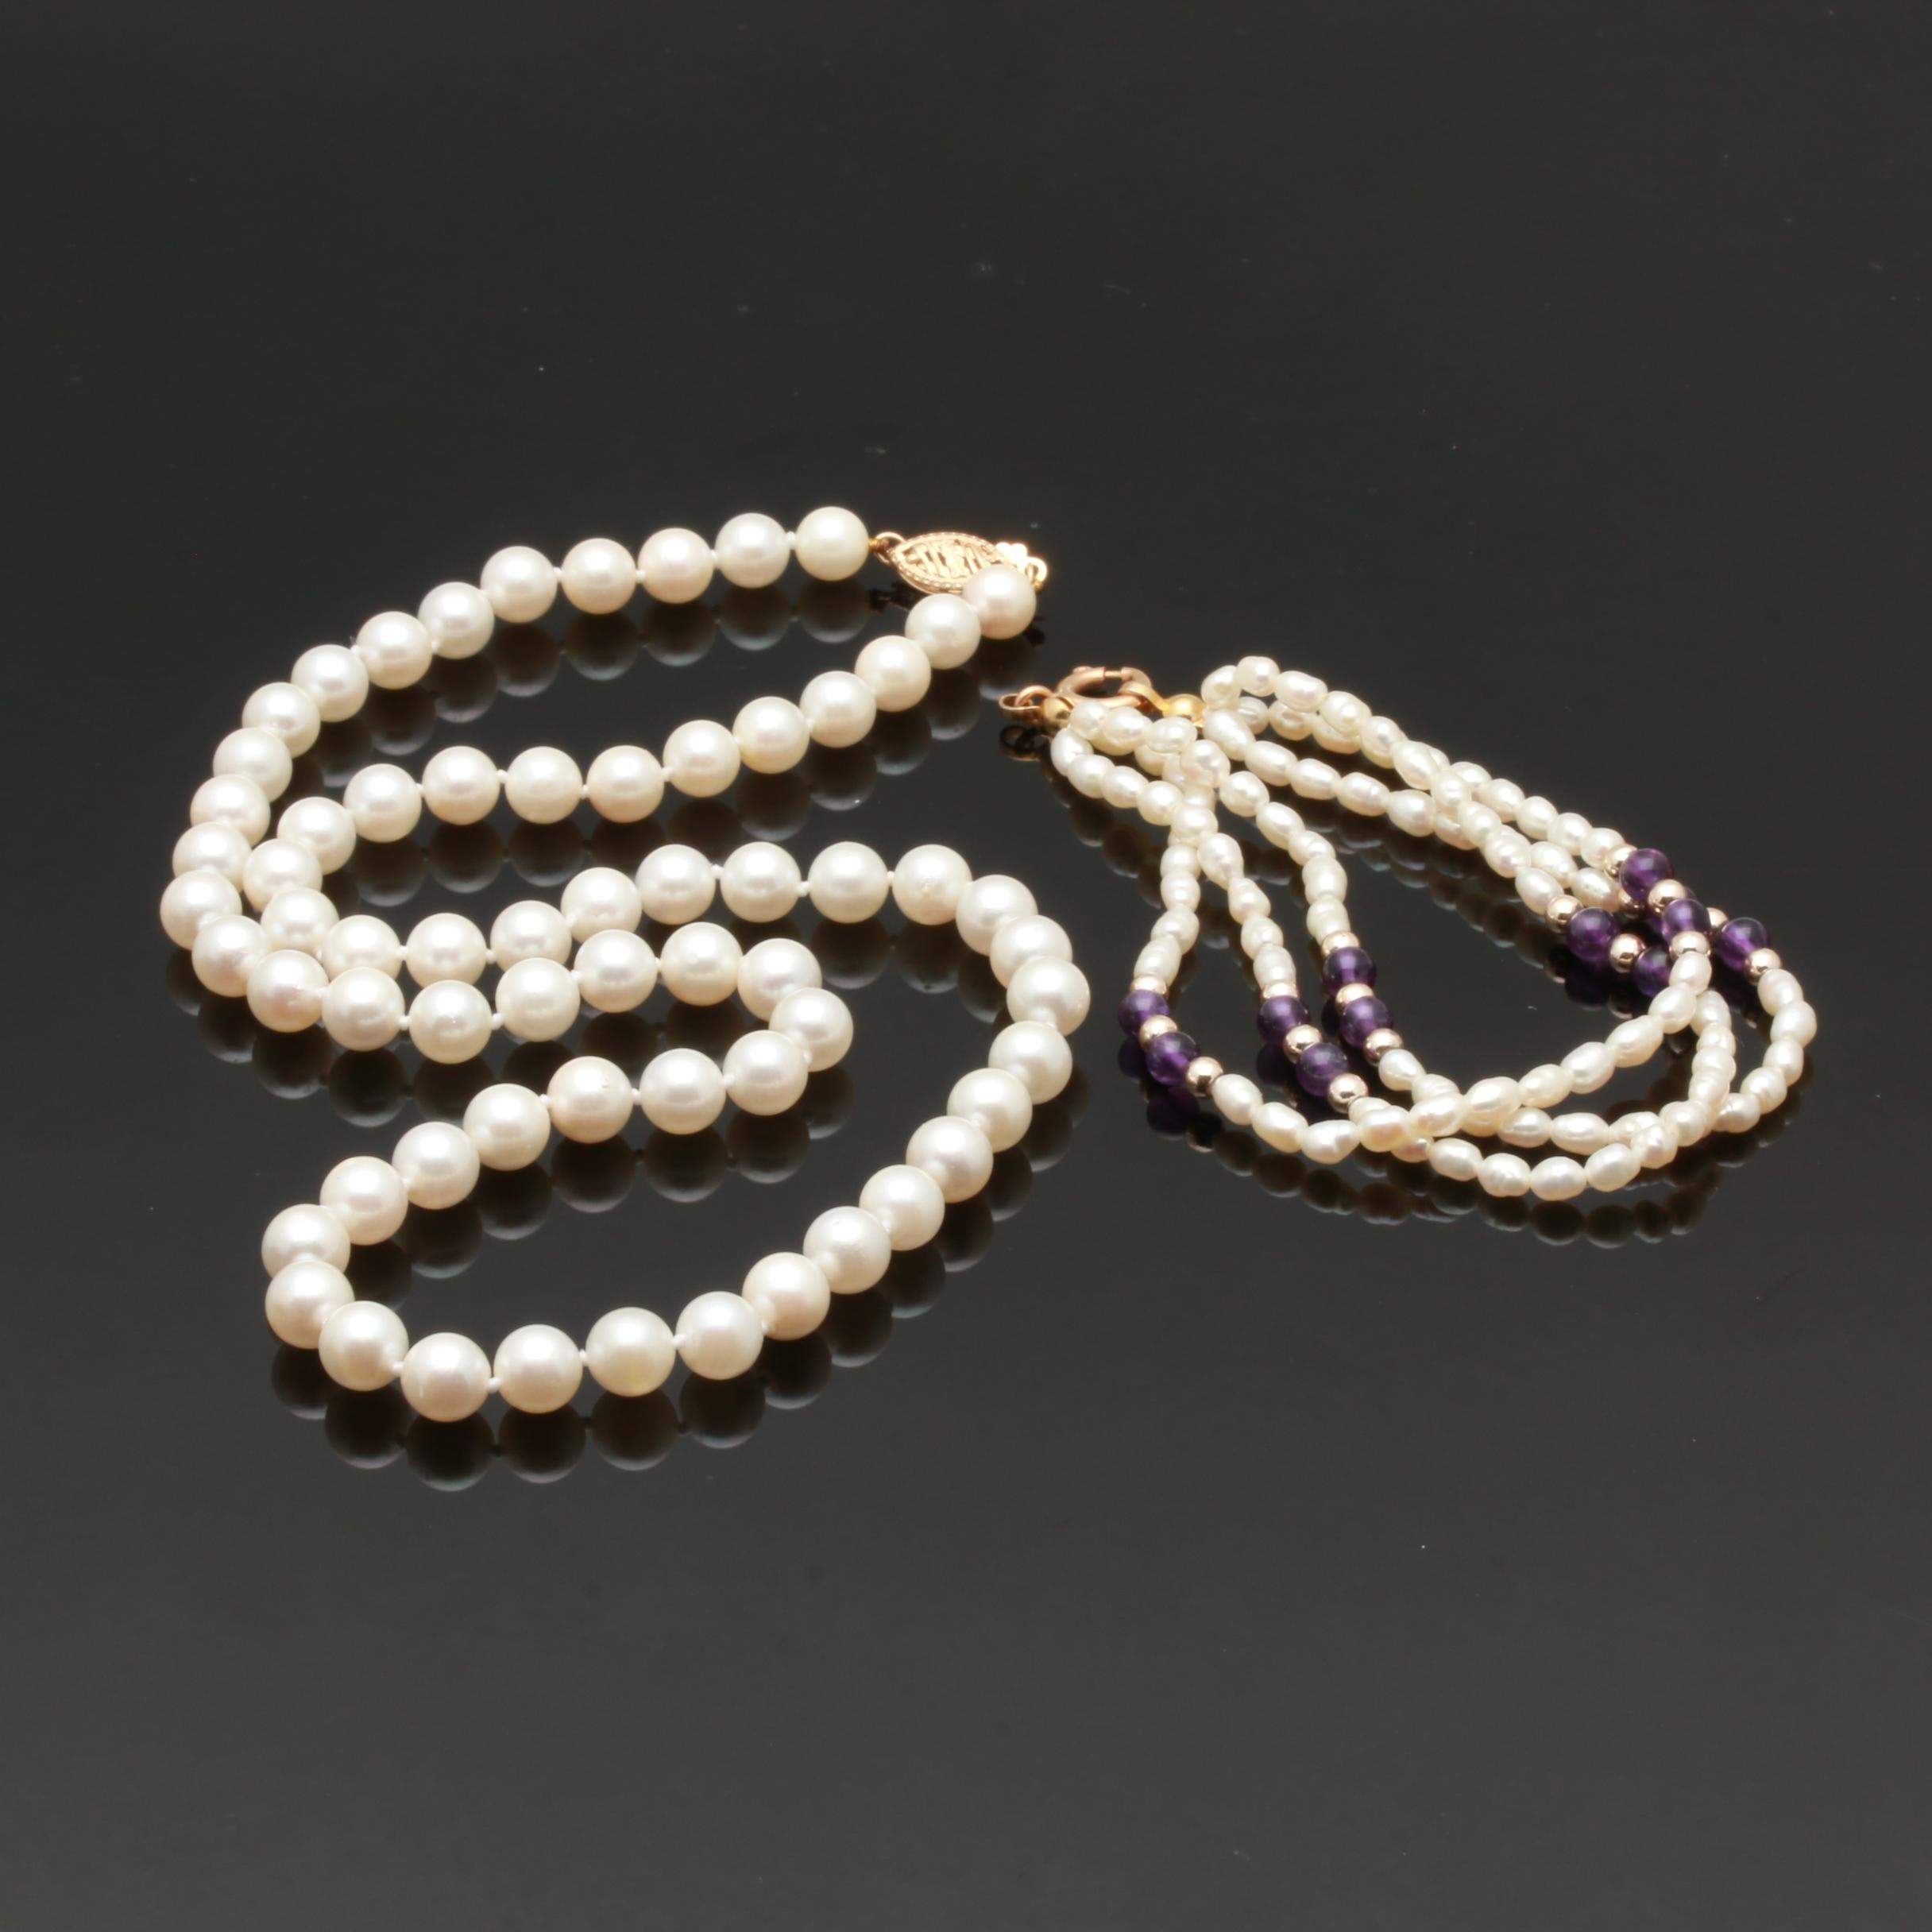 14K Yellow Gold Cultured Pearl Necklace and Bracelet Including Amethyst